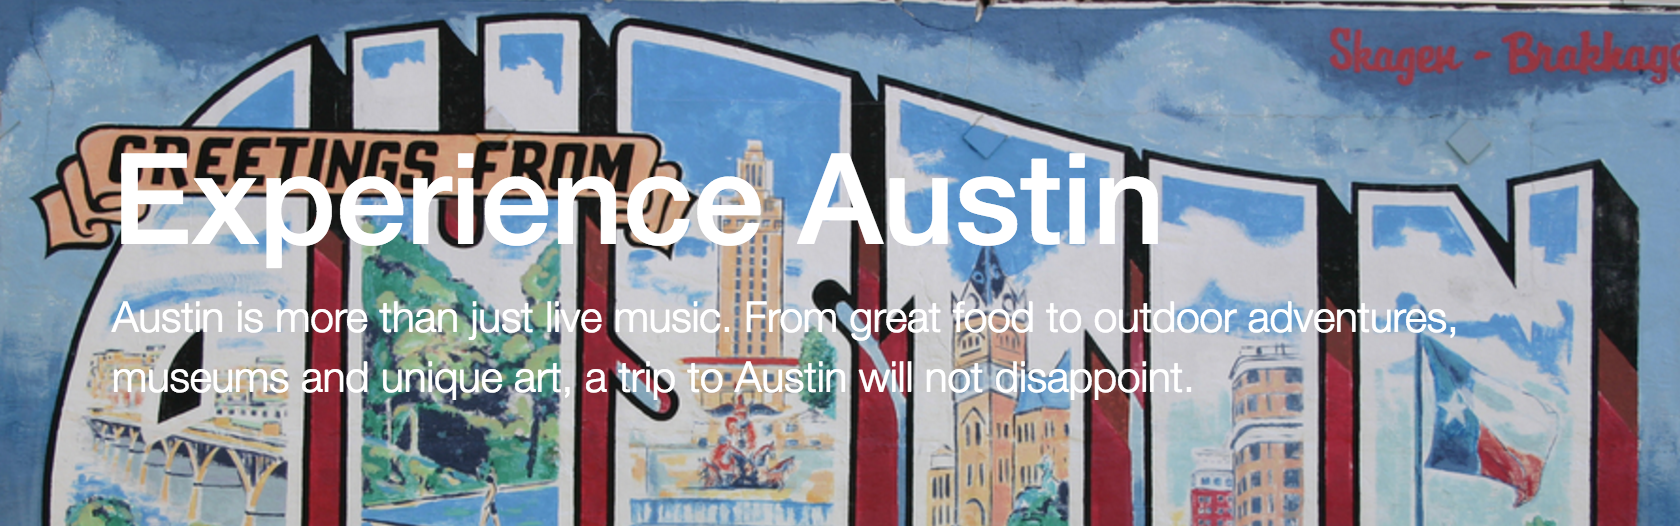 Experience Austin image